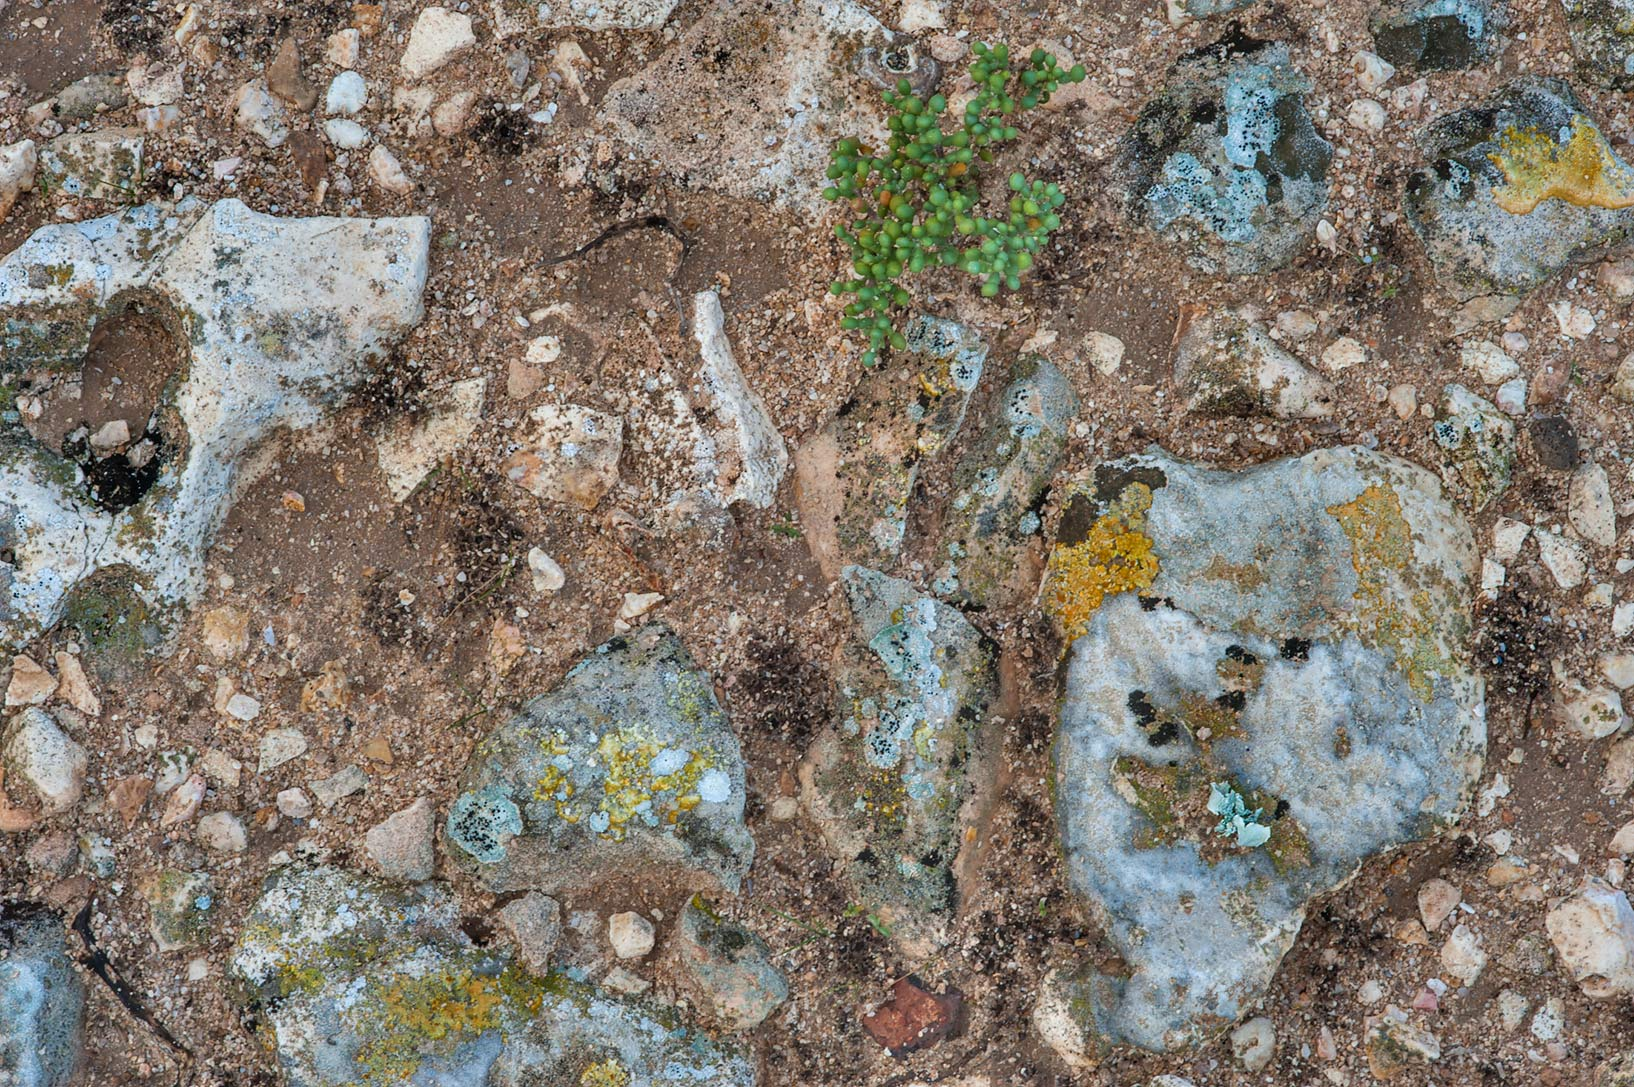 Soil texture near Jabal Al Jassasiya, on north-eastern coast. Qatar